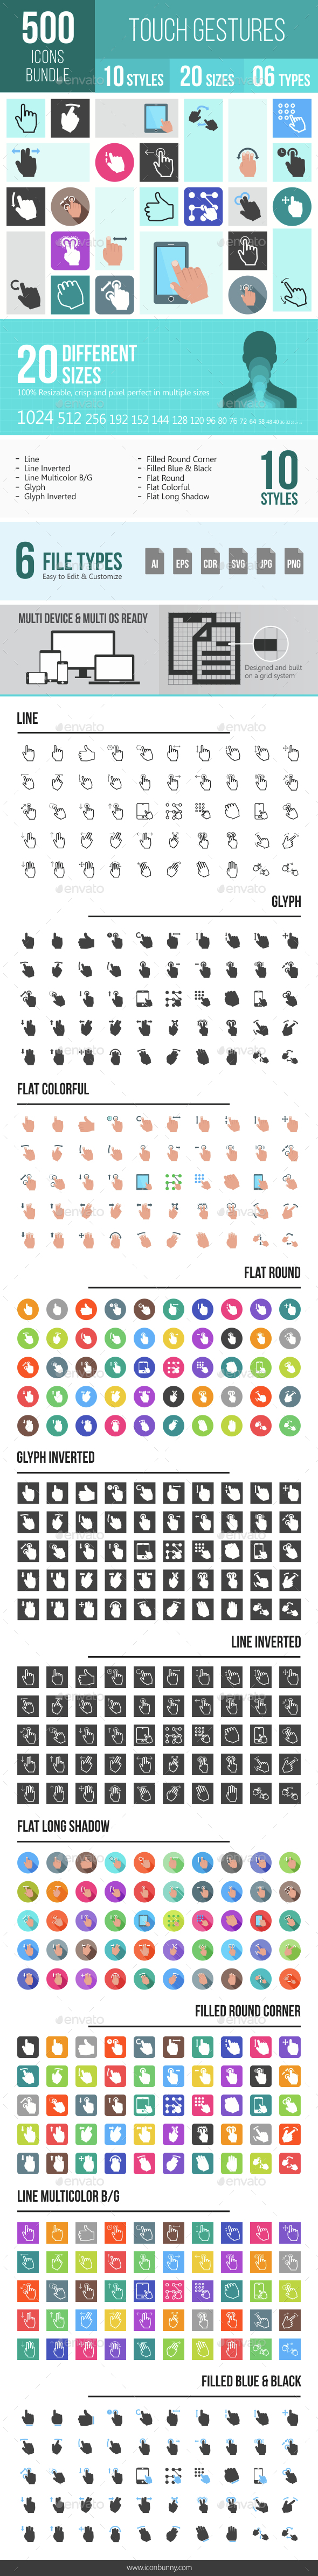 500 Touch Gestures Icons Bundle - Icons